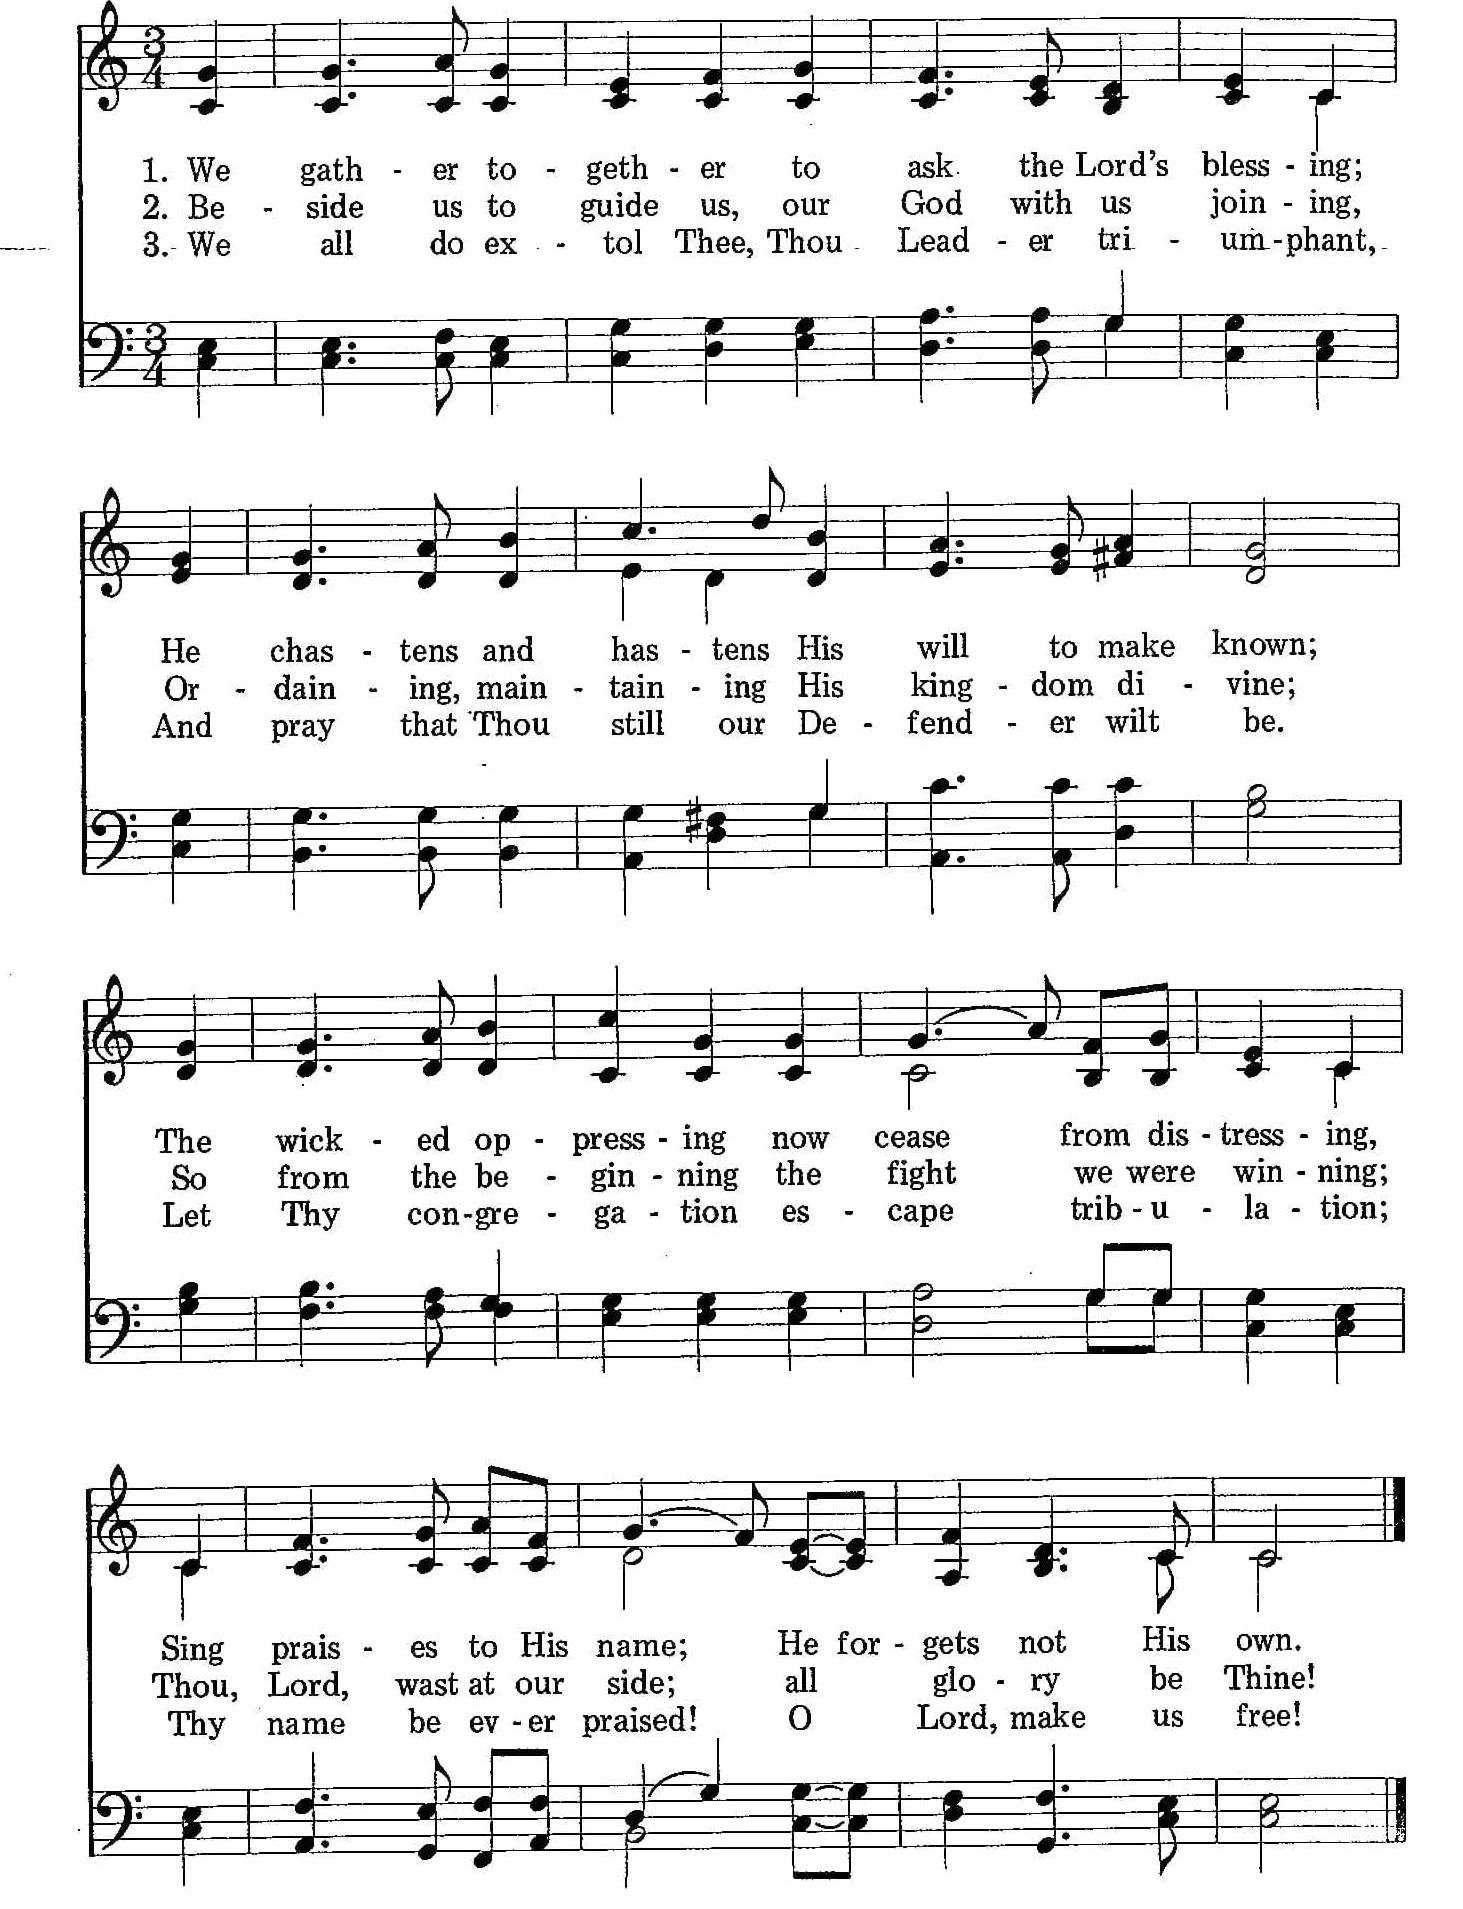 008 – We Gather Together sheet music